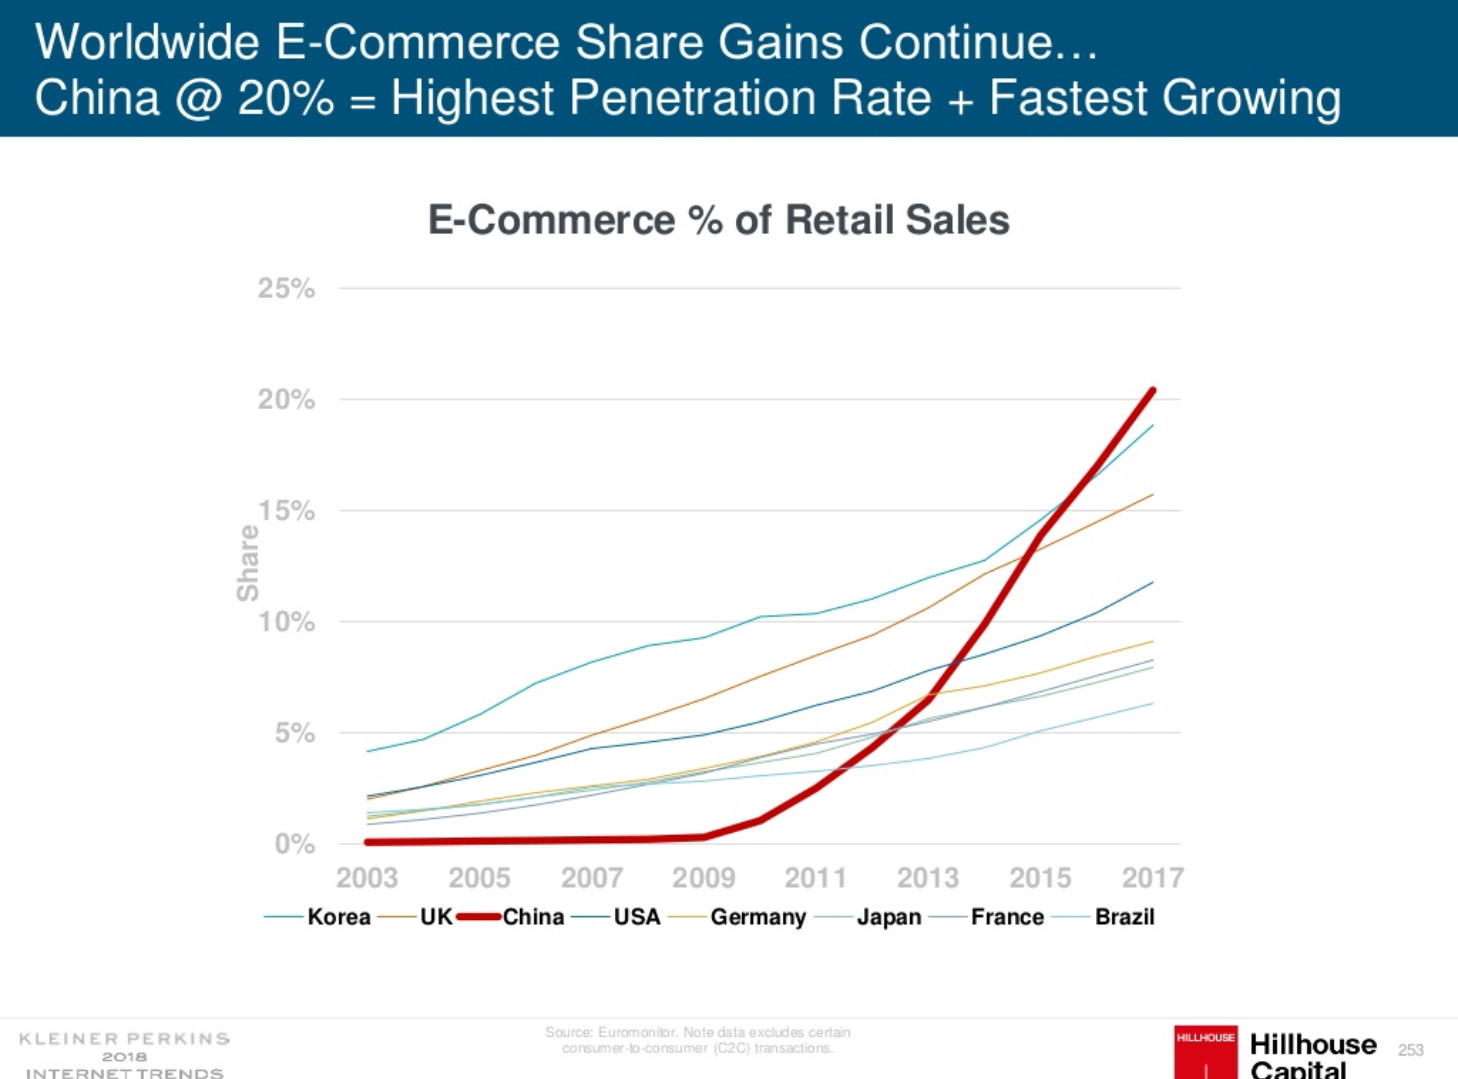 Worldwide E-commerce Share Gains continue to grow inside China